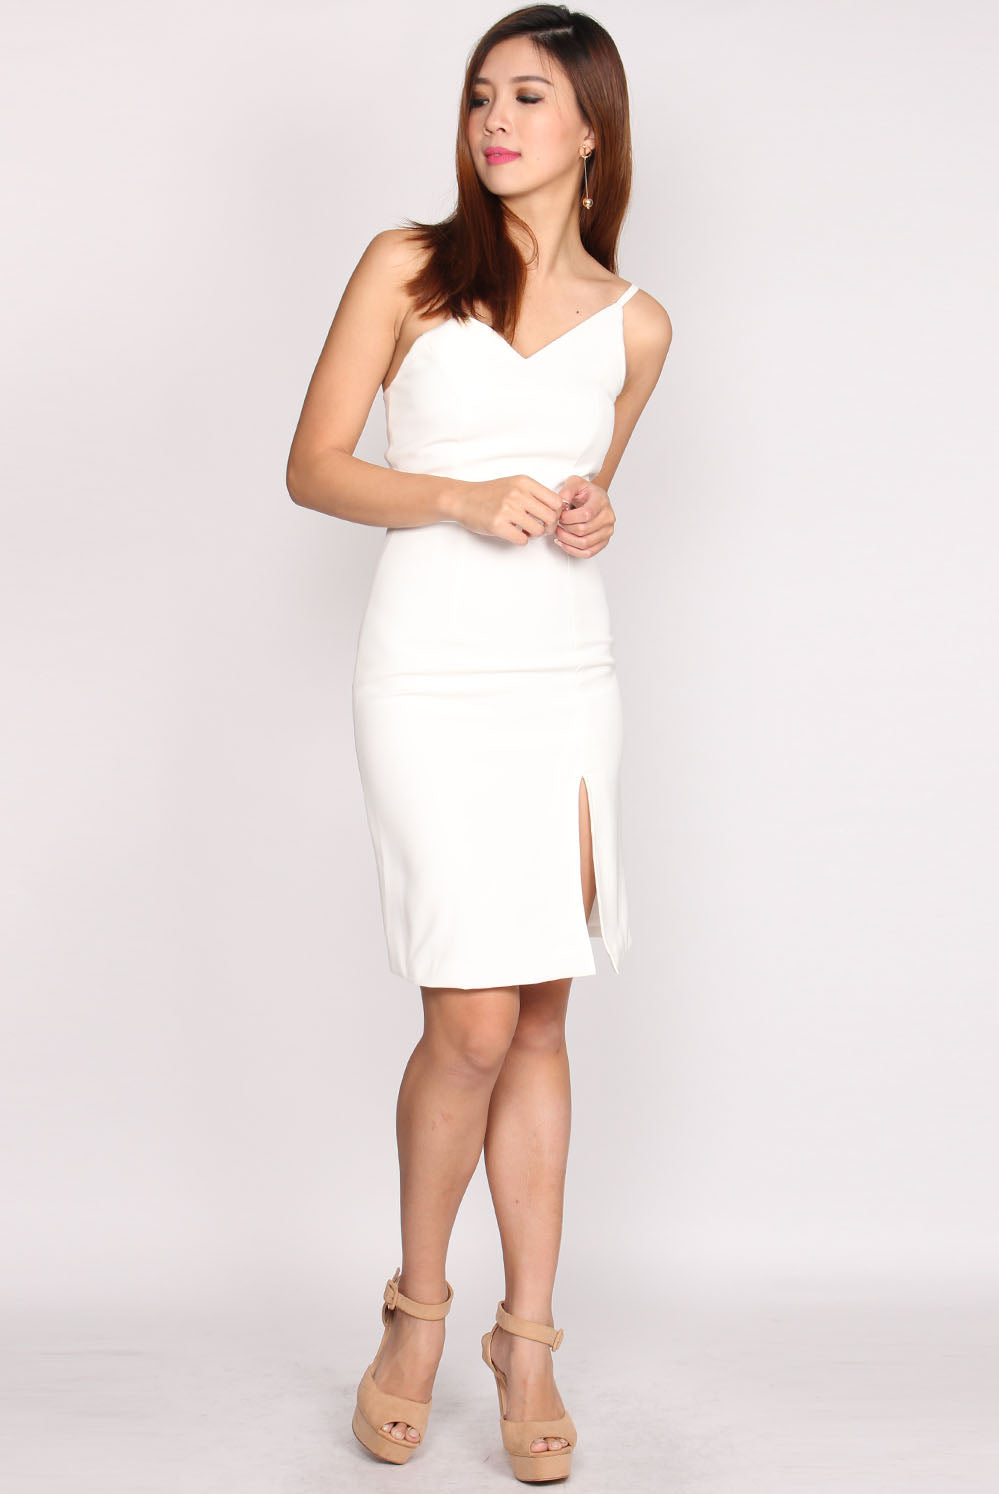 Averson Toga Slit Cut Dress In White